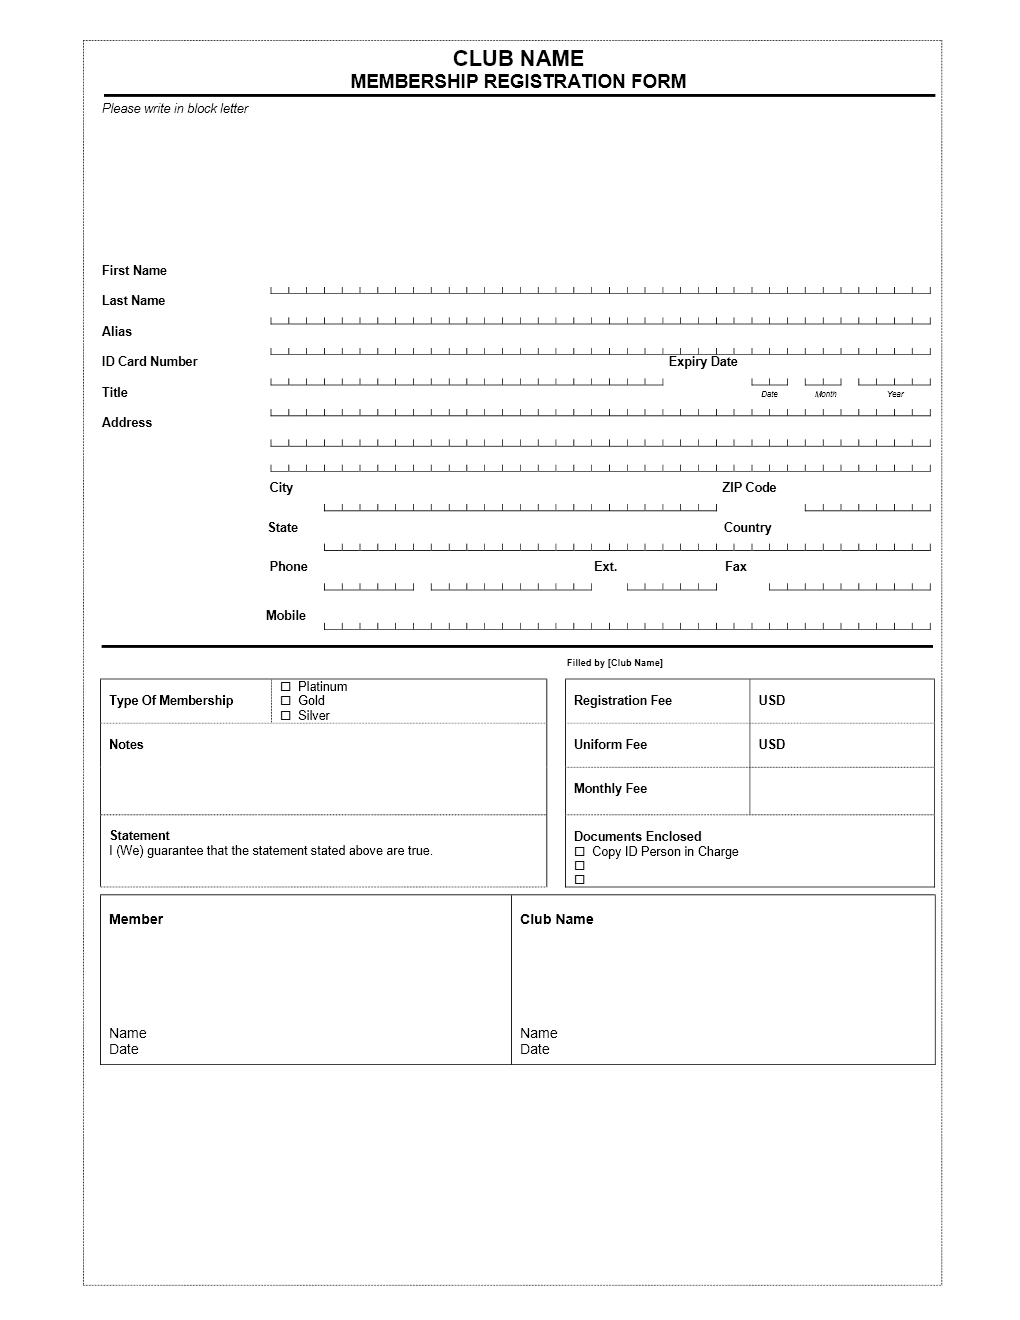 11 images of membership form template free migapps membership application form template free